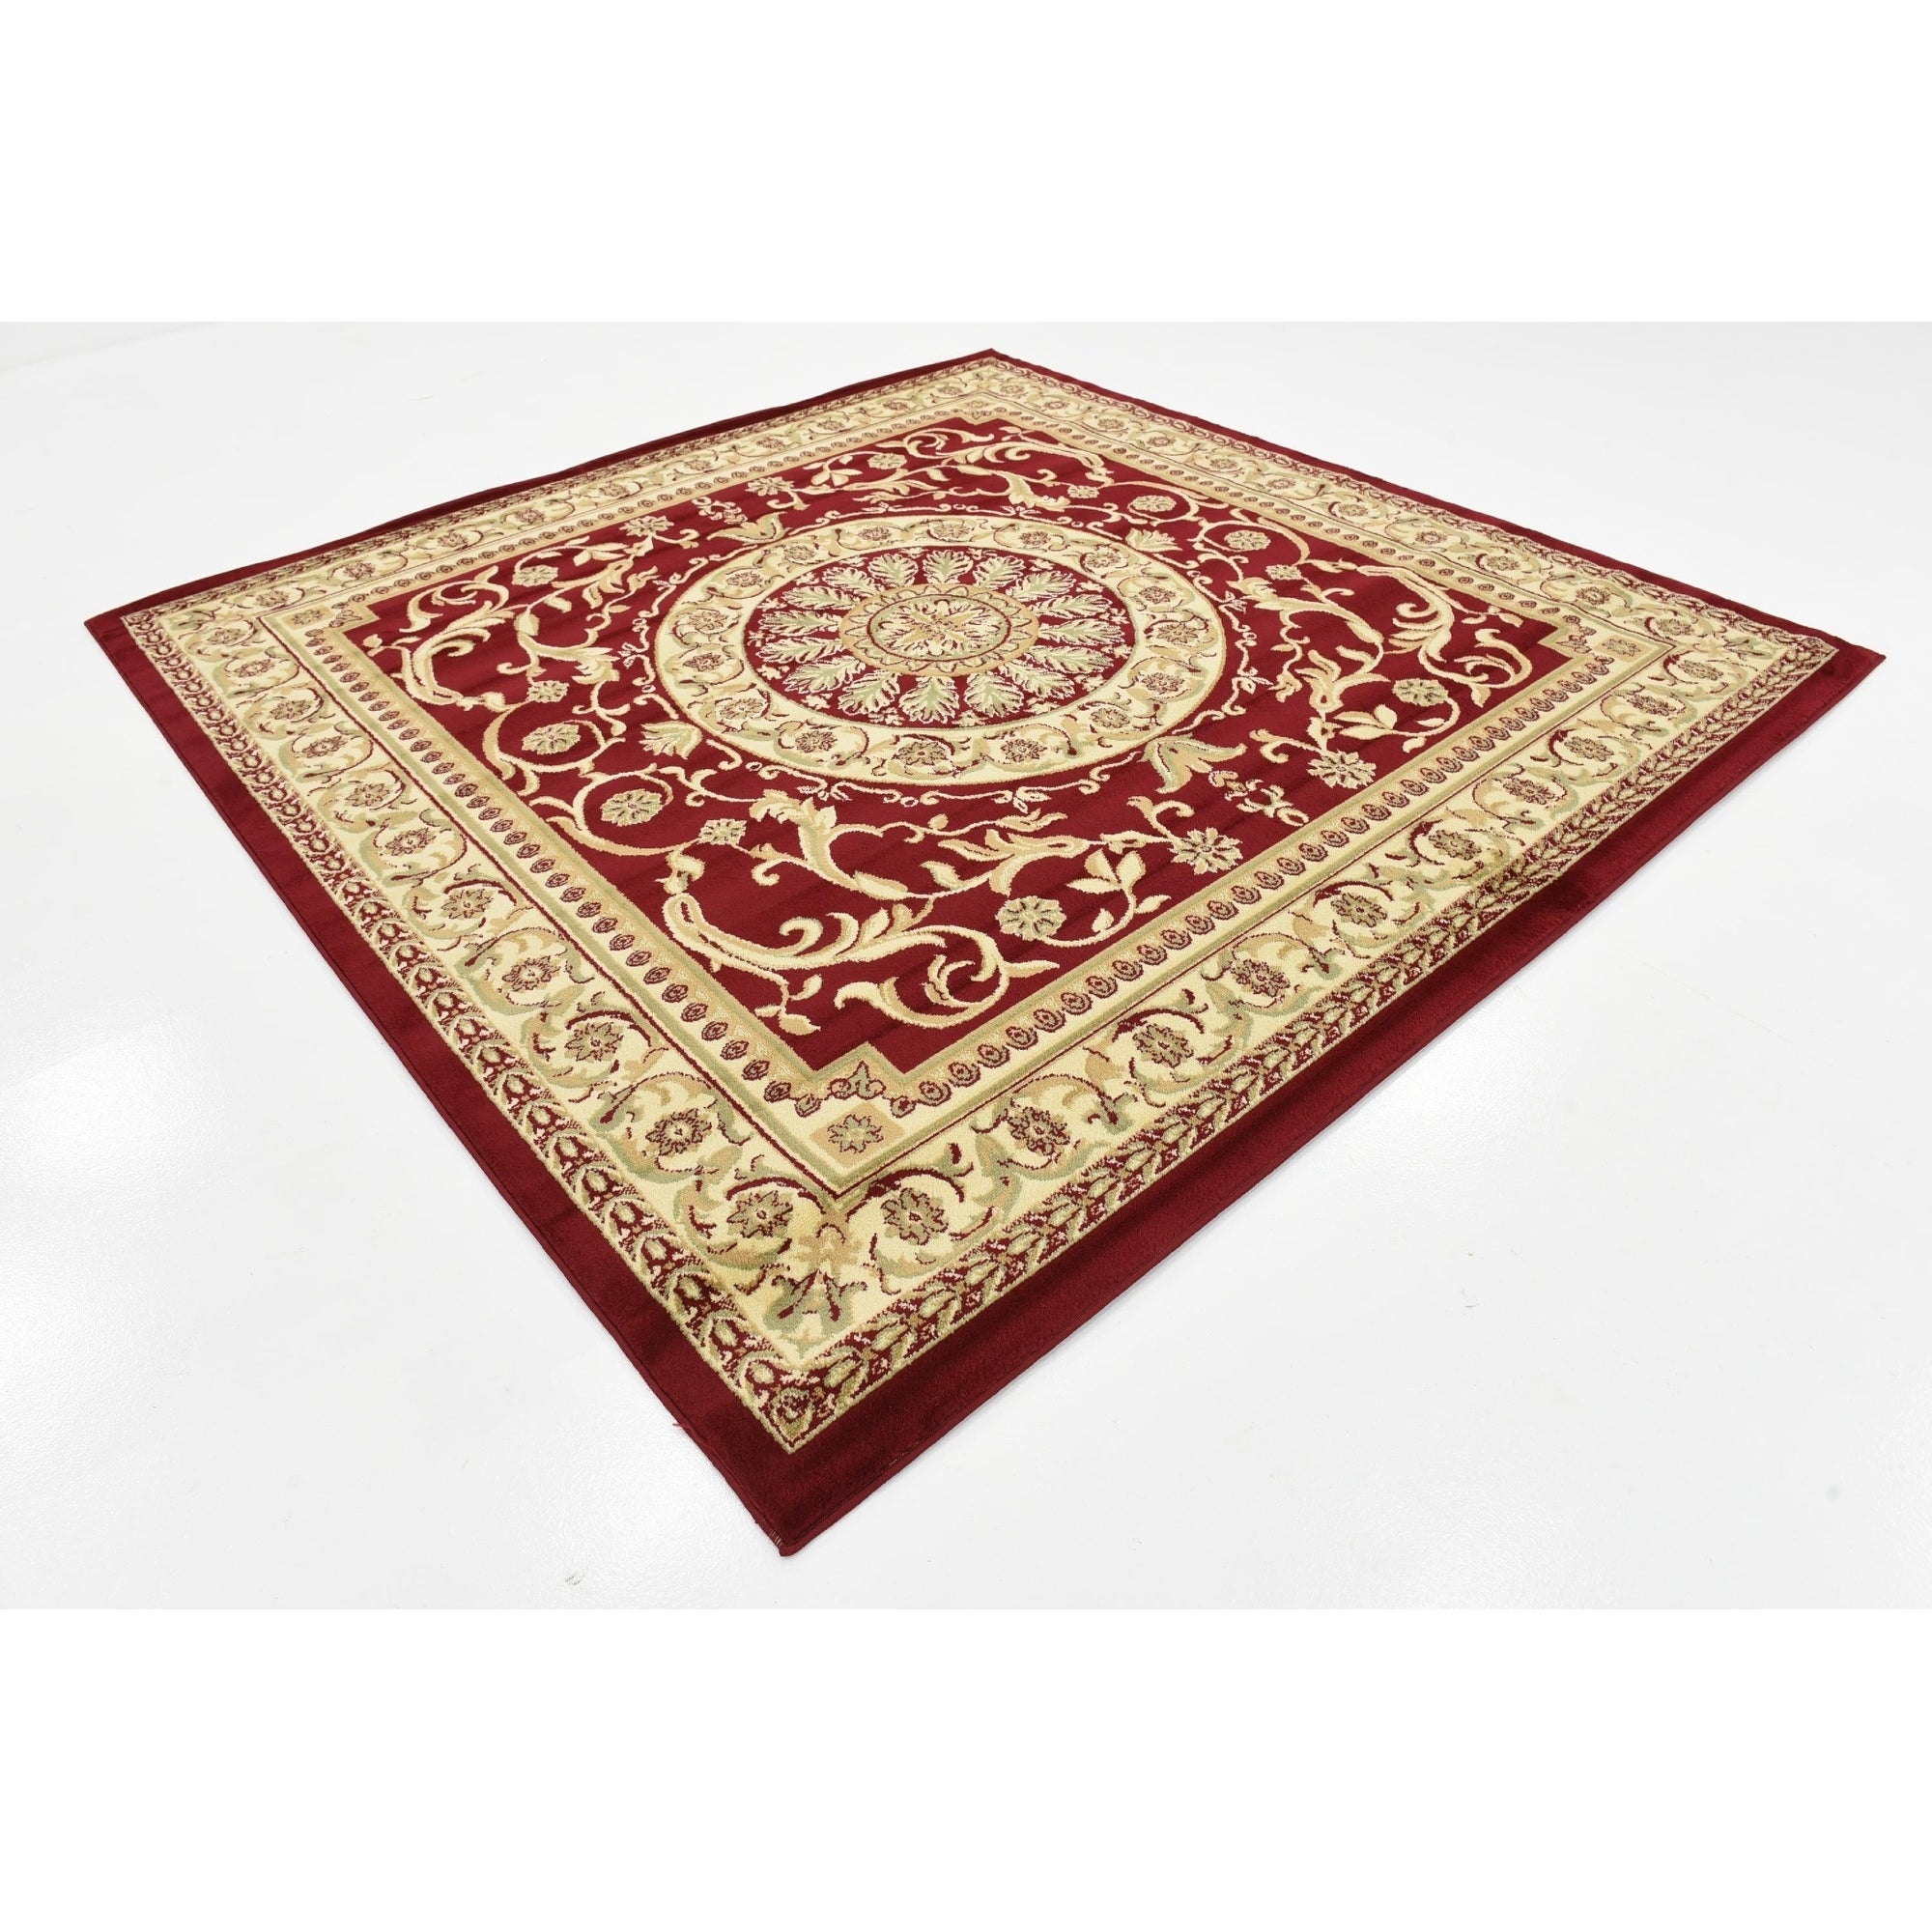 8x8 Square Wool Area Rugs Best Rug 2018